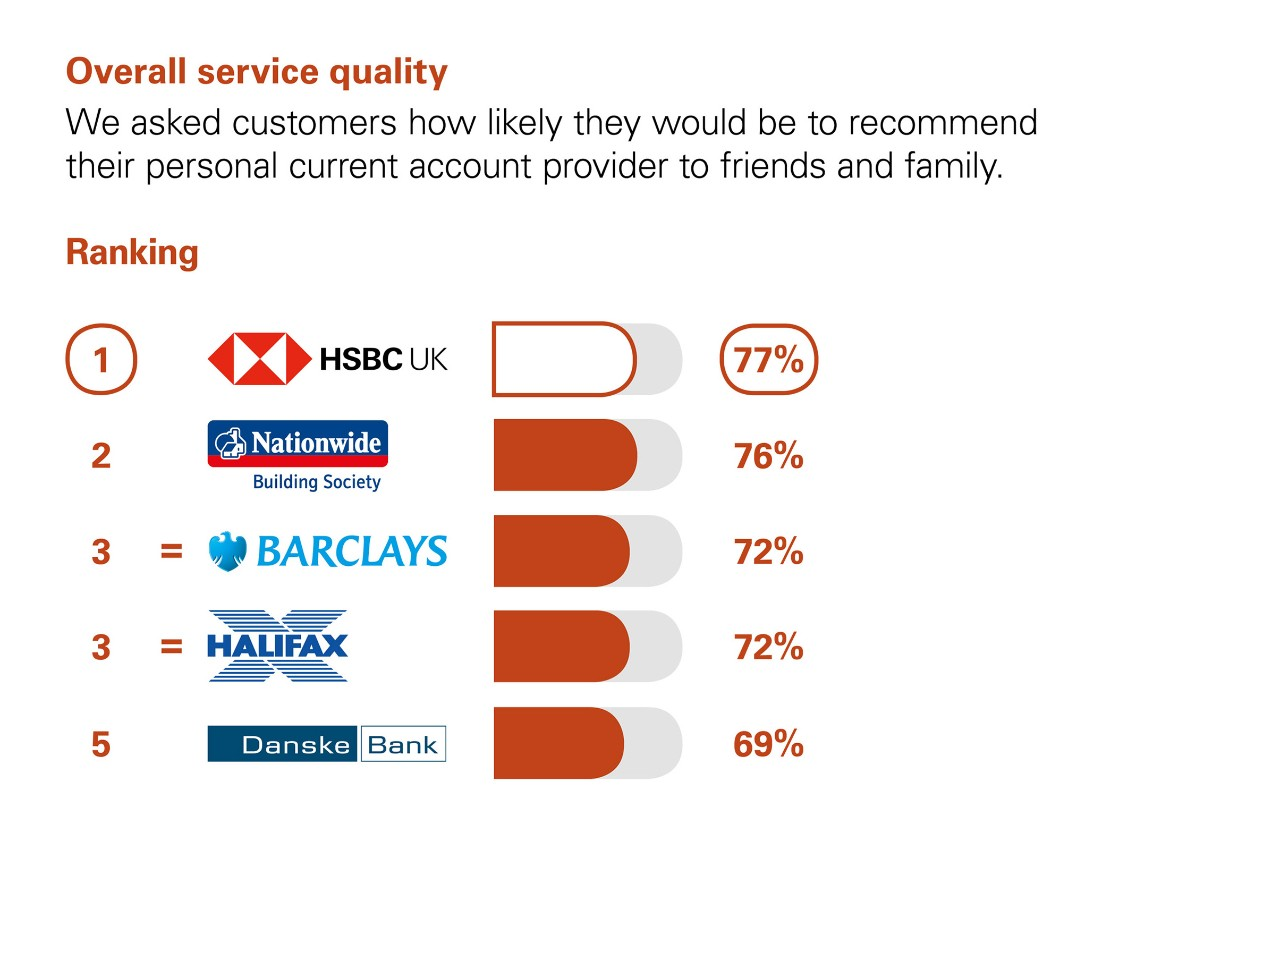 Overall Service Quality. We asked customers how likely they would be to recommend their personal current account provider to friends and family. Results: 1 HSBC UK 77%. 2 Nationwide 76%. Equal 3 Barclays and Halifax 72%. 5 Danske Bank 69%.